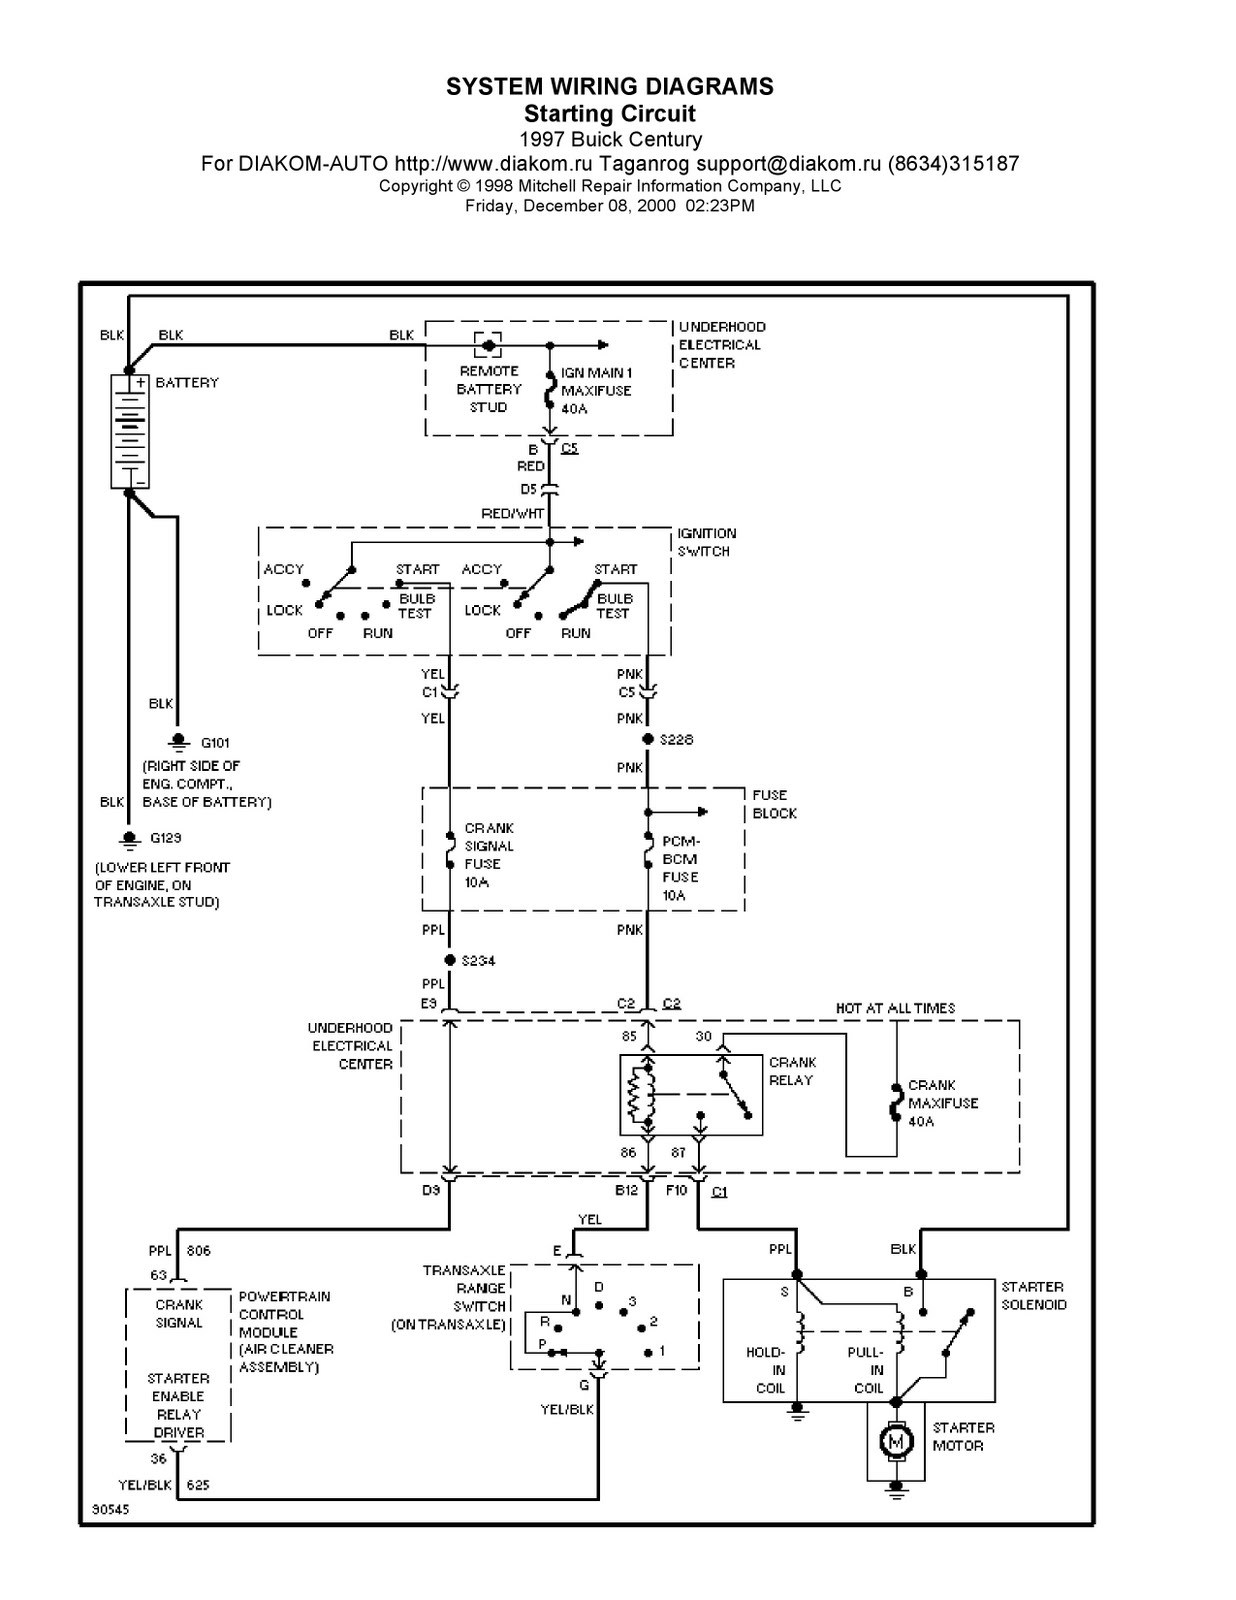 Diagram 2000 Buick Century Wiring Diagram Full Version Hd Quality Wiring Diagram Teridiagram Lrpol Fr